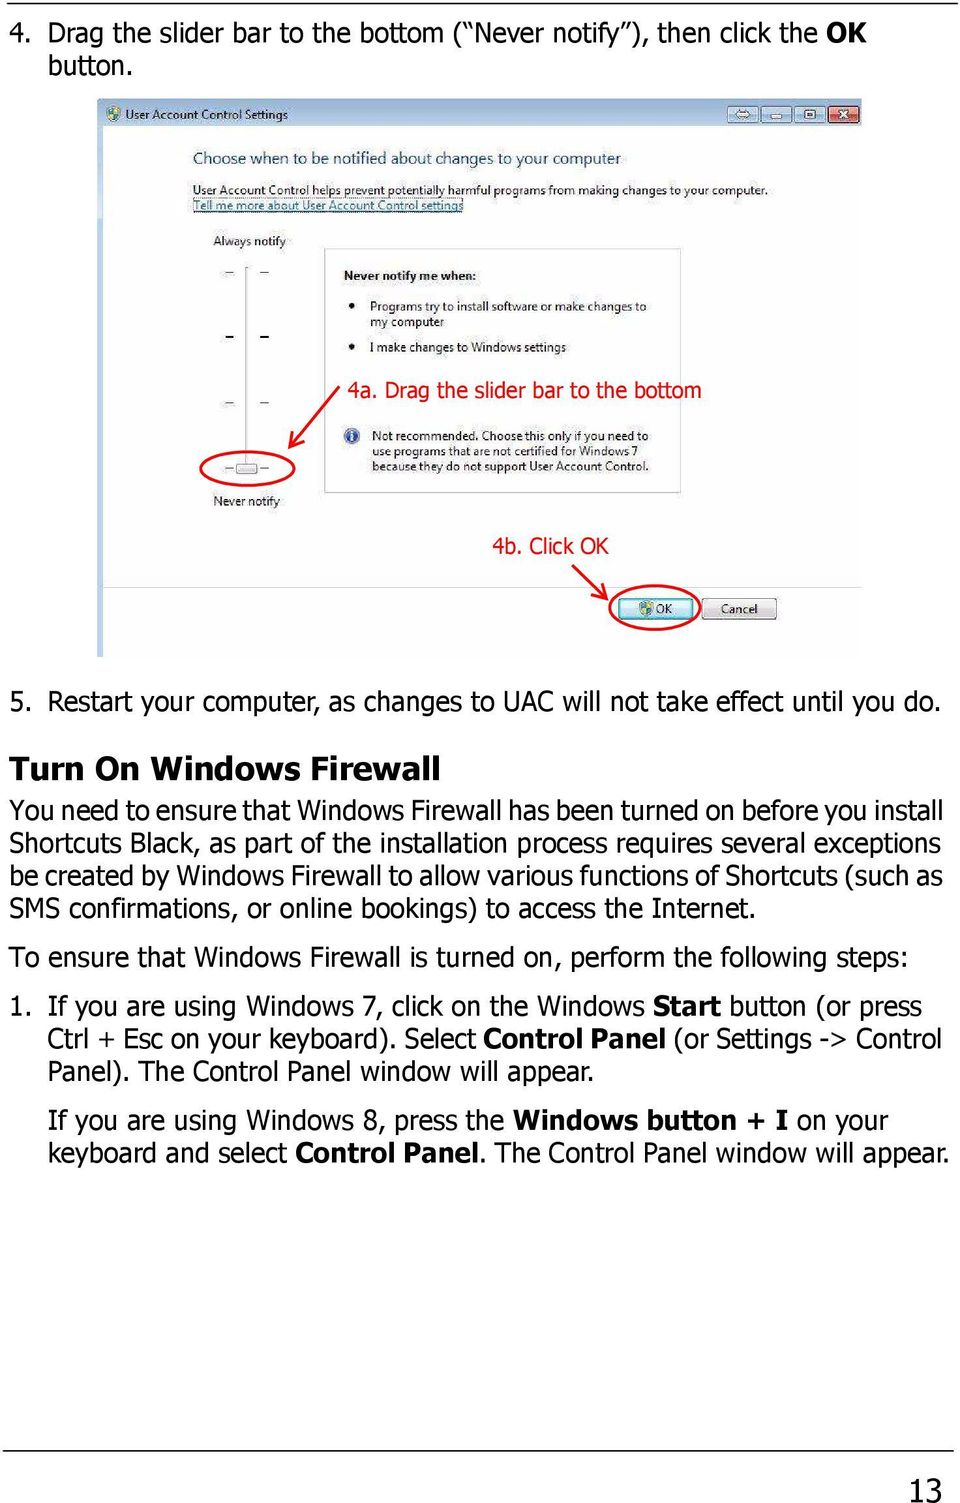 Turn On Windows Firewall You need to ensure that Windows Firewall has been turned on before you install Shortcuts Black, as part of the installation process requires several exceptions be created by